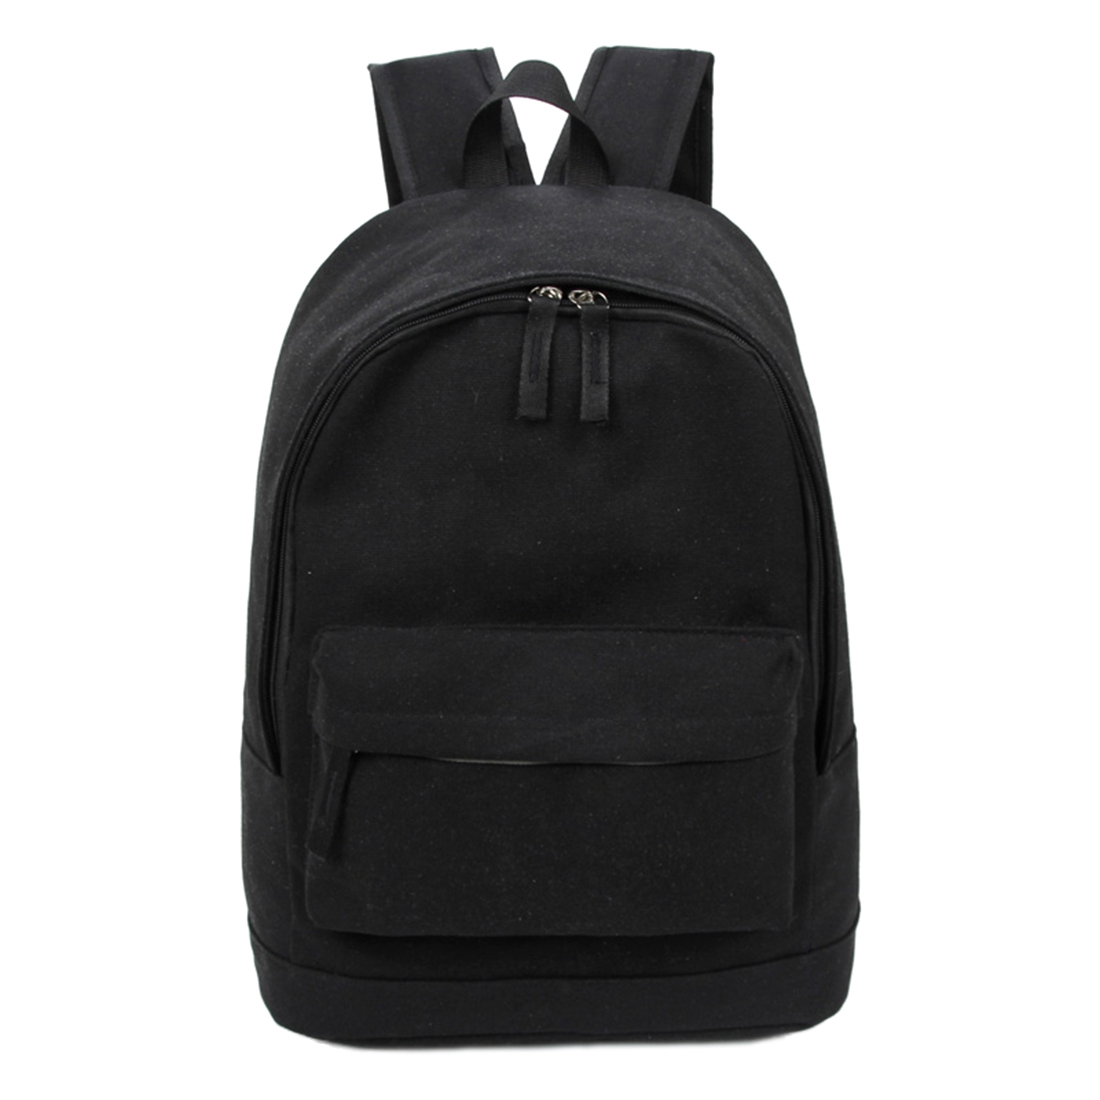 Korea Style Fashion Backpack for Men and Women Preppy Style Soft Back Pack Unisex School Bags Big Capacity Canvas Bag